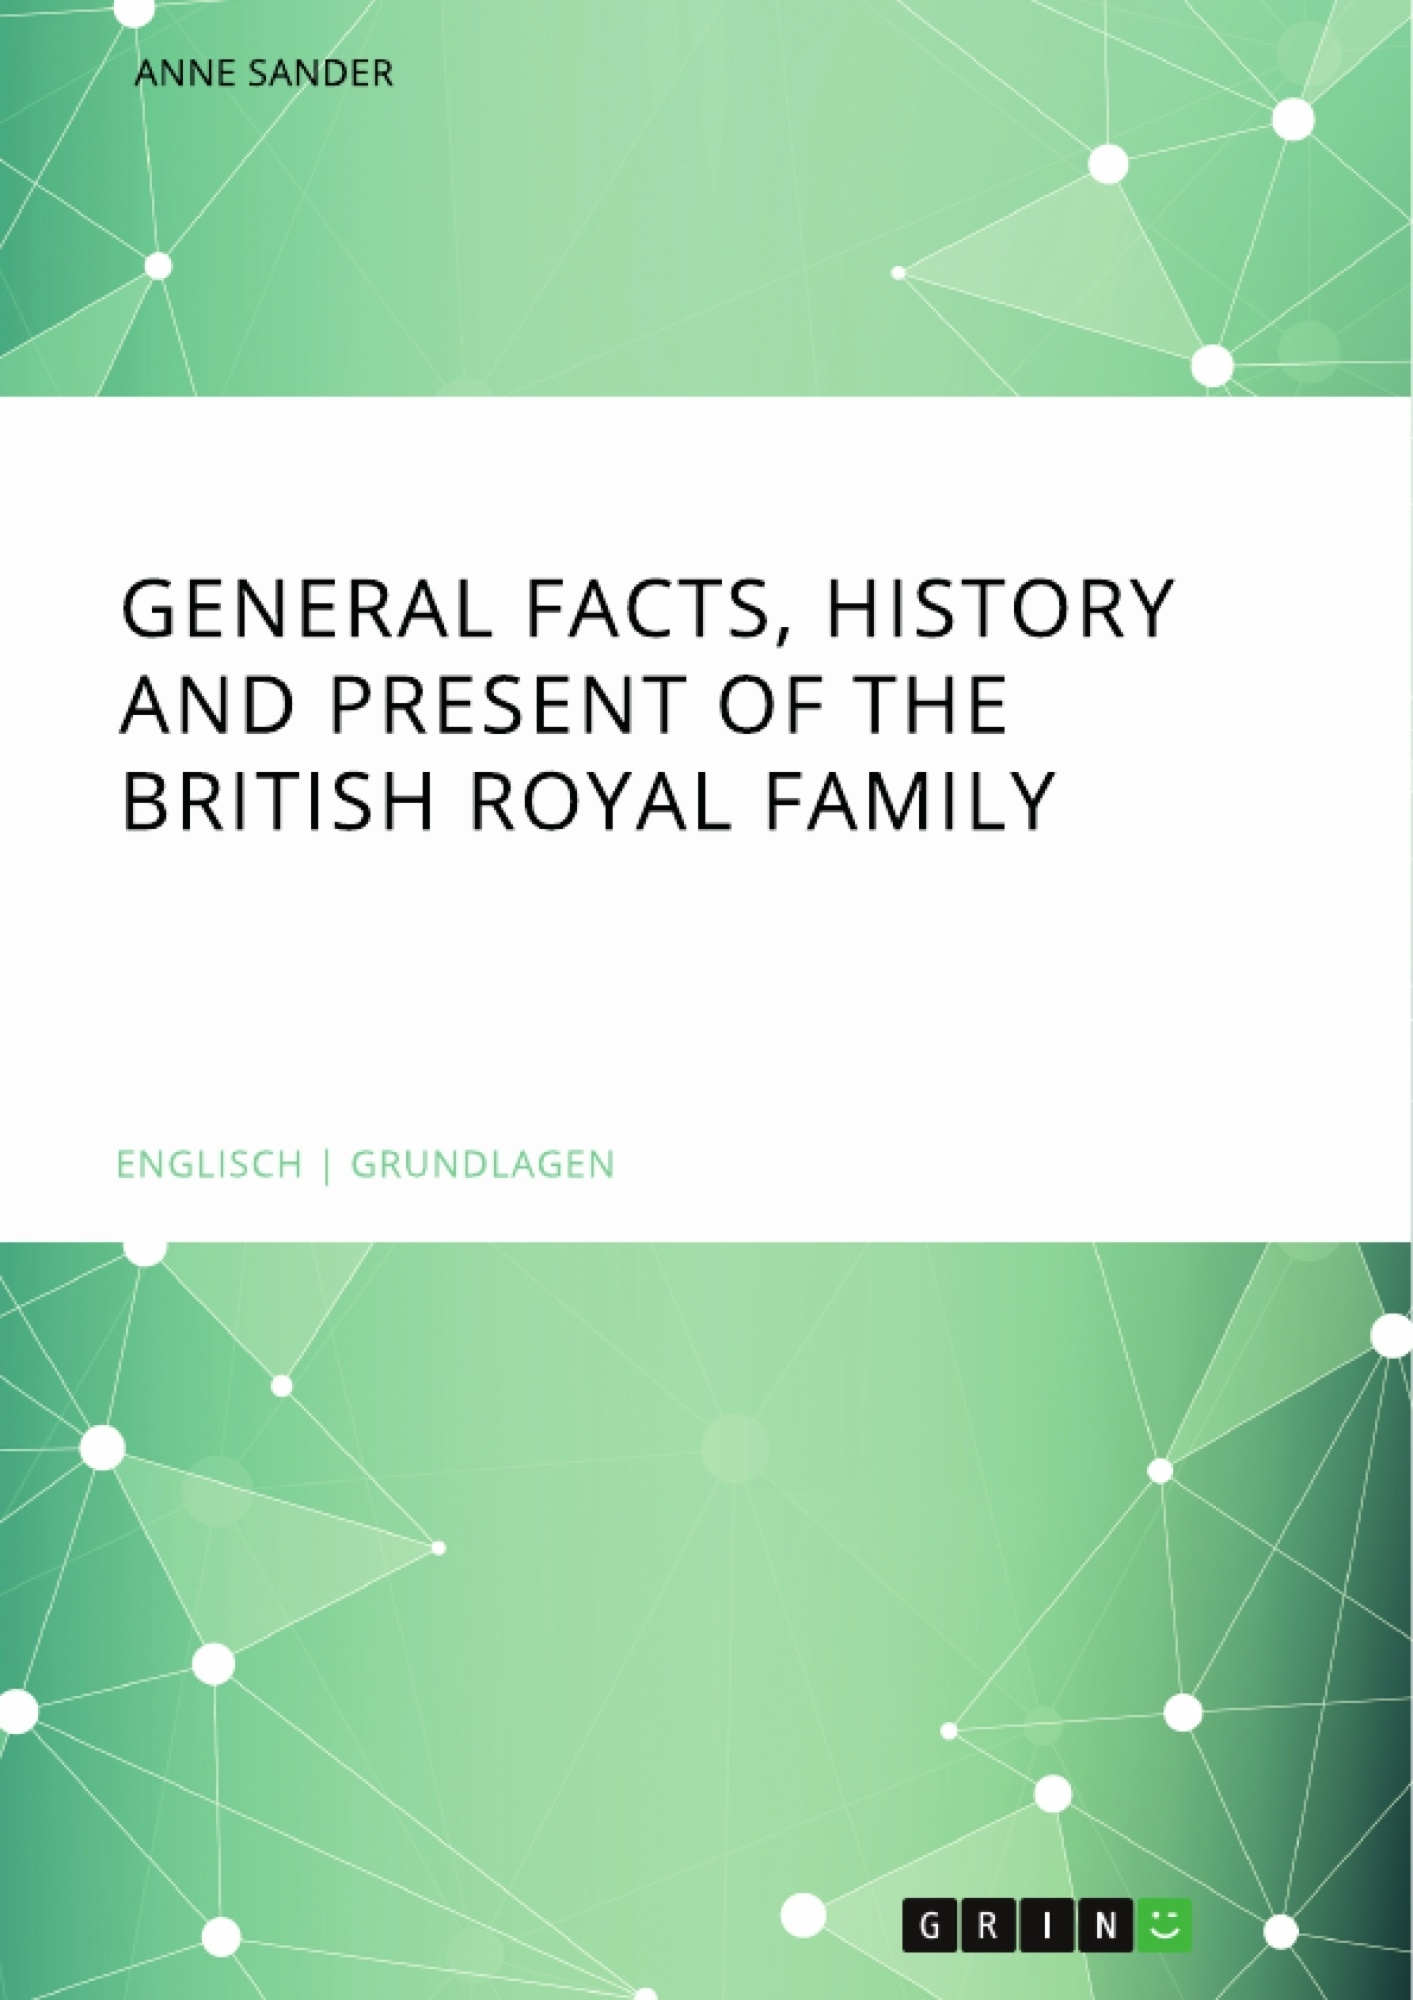 Title: General Facts, History and Present of the British Royal Family